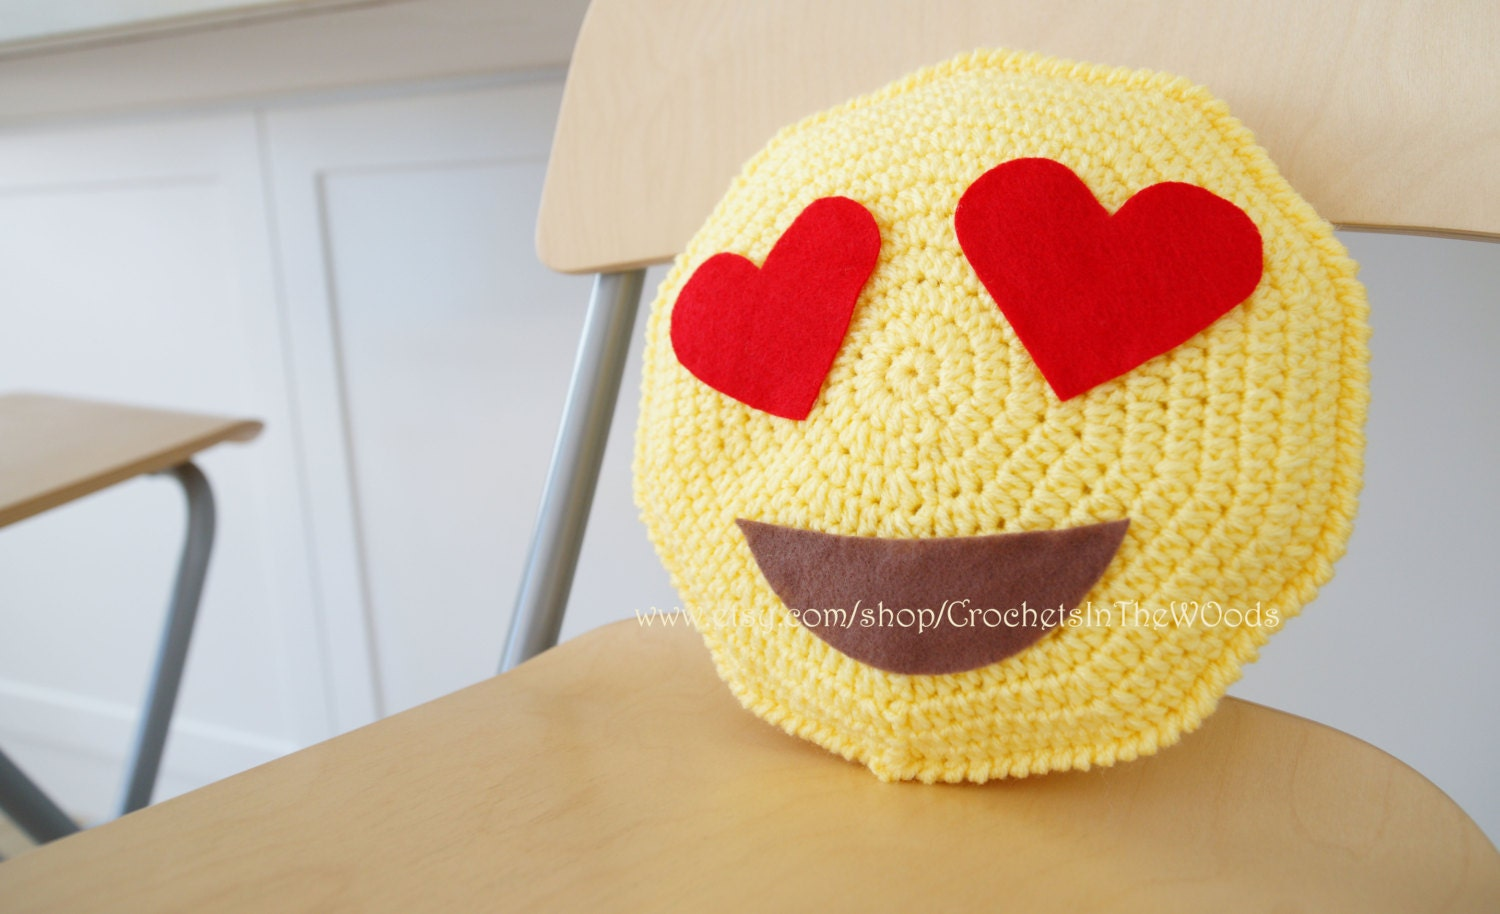 Crocheting Emoji : Items similar to Emoji Whatsapp I am in love Crochet Amigurumi Cushion ...